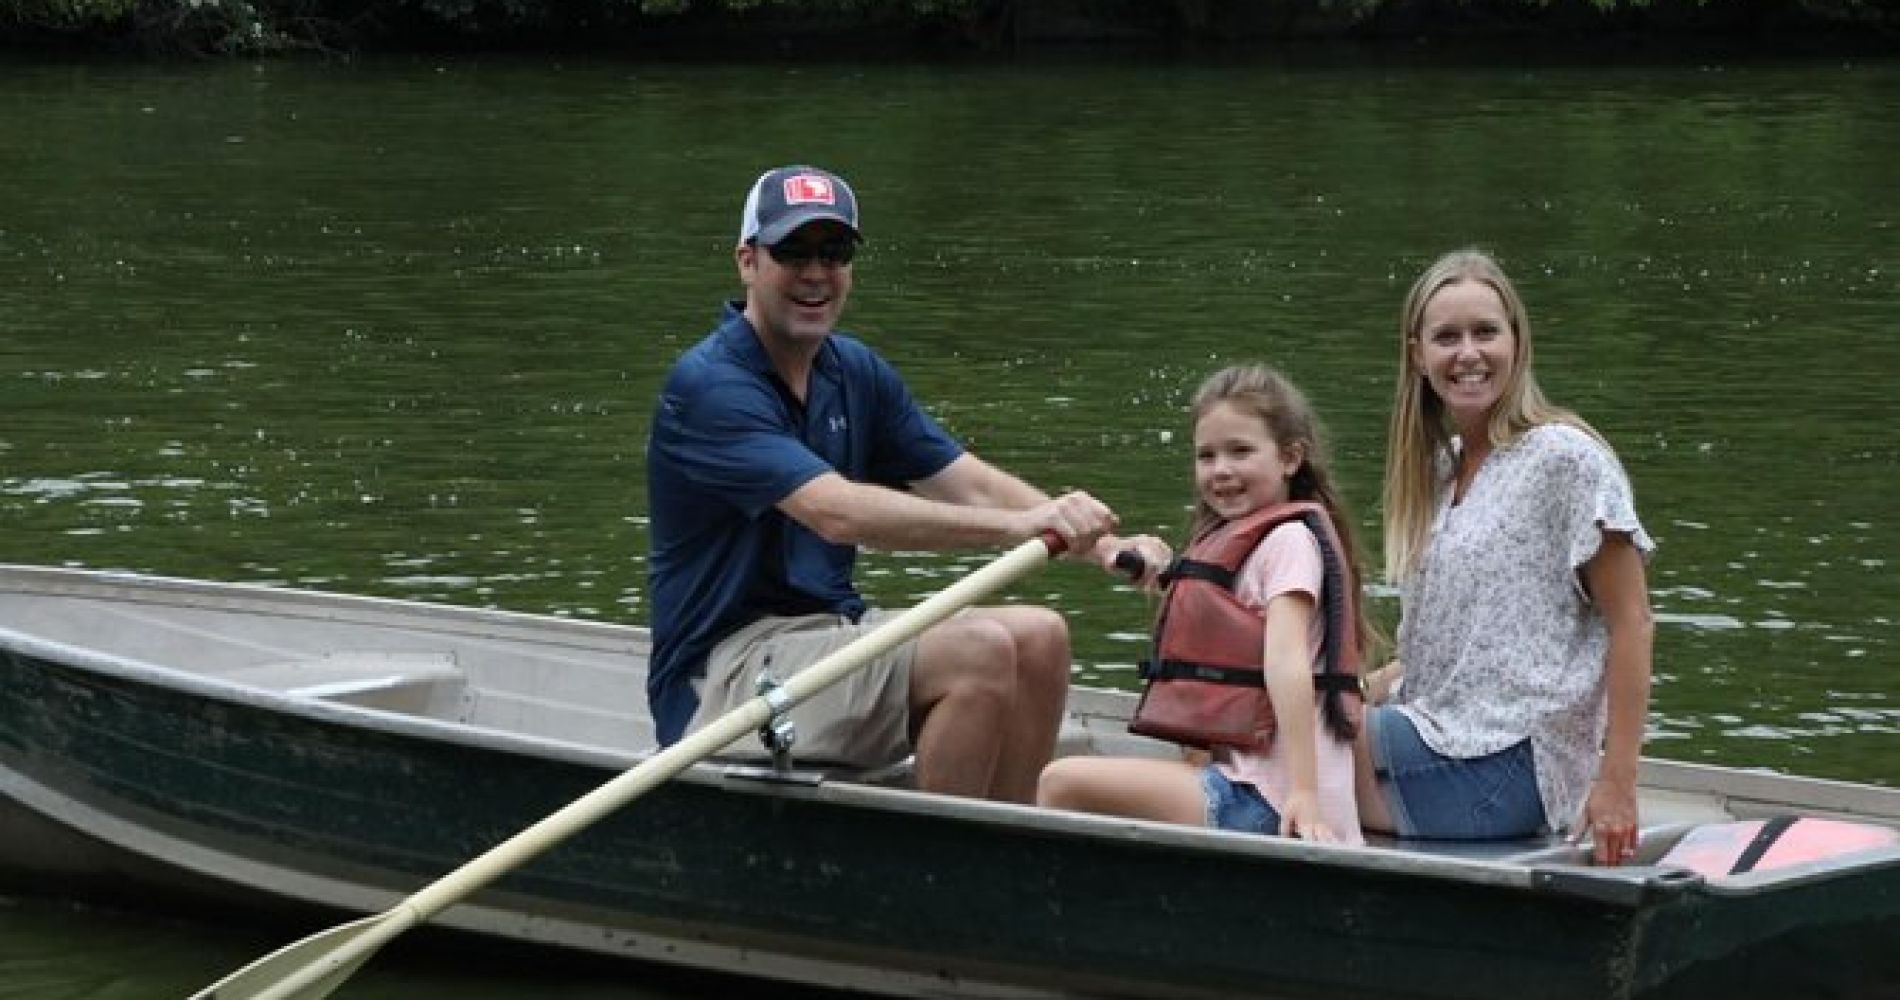 Central Park Self-Guided Tour with Bike and Rowboat Rental